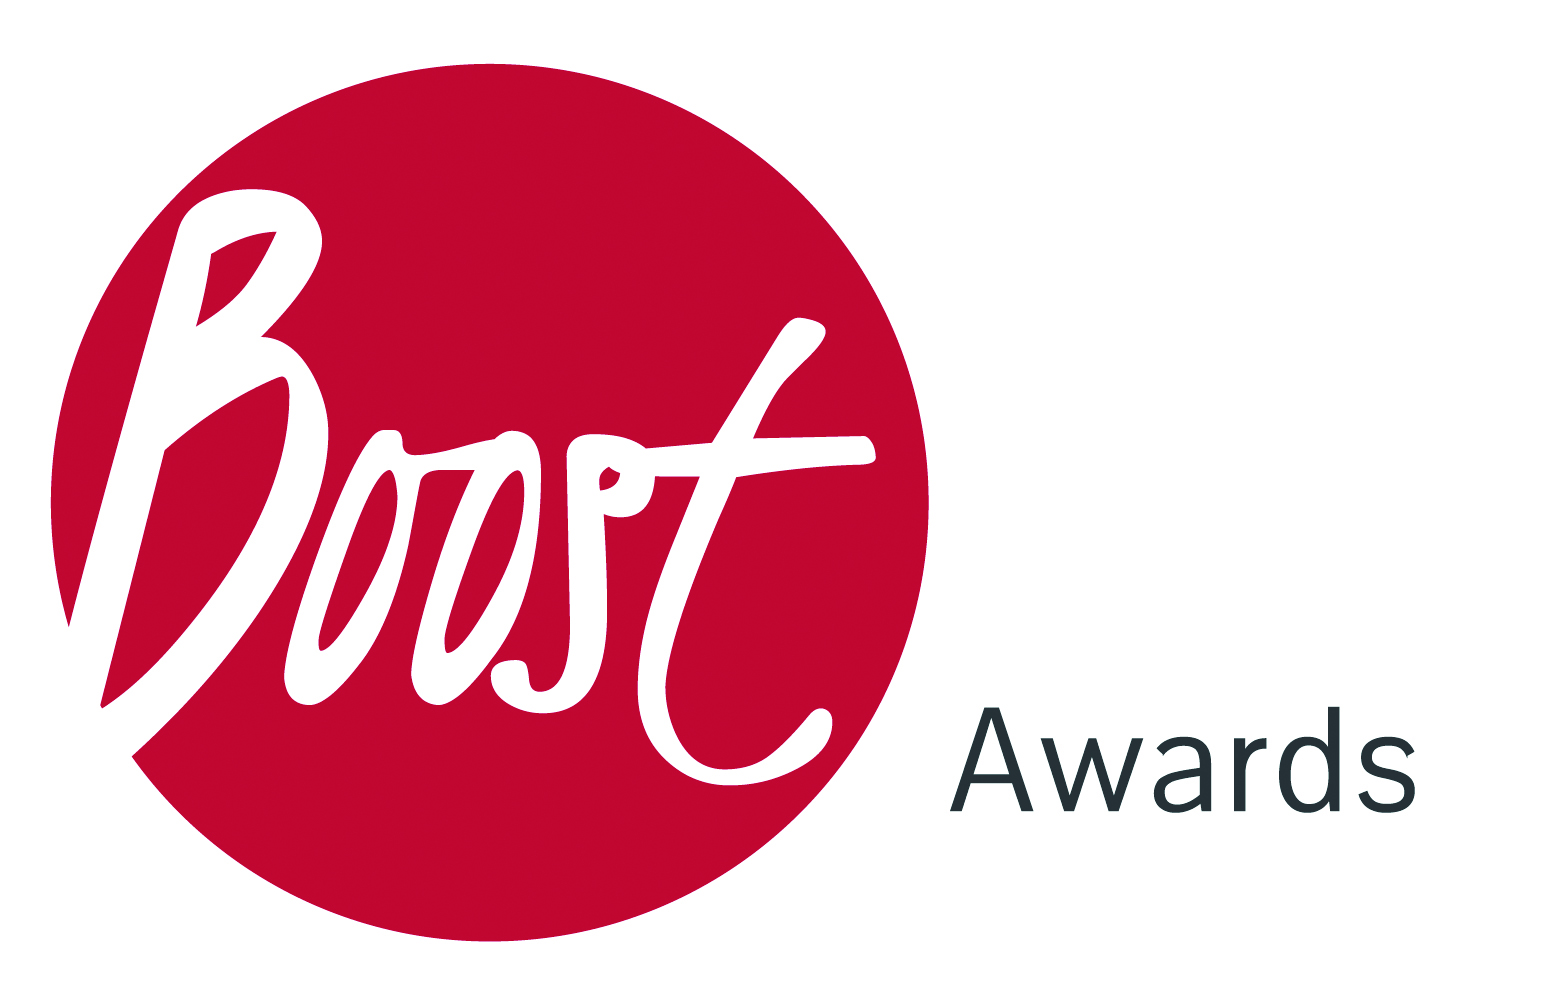 Boost_Awards_logo.jpg